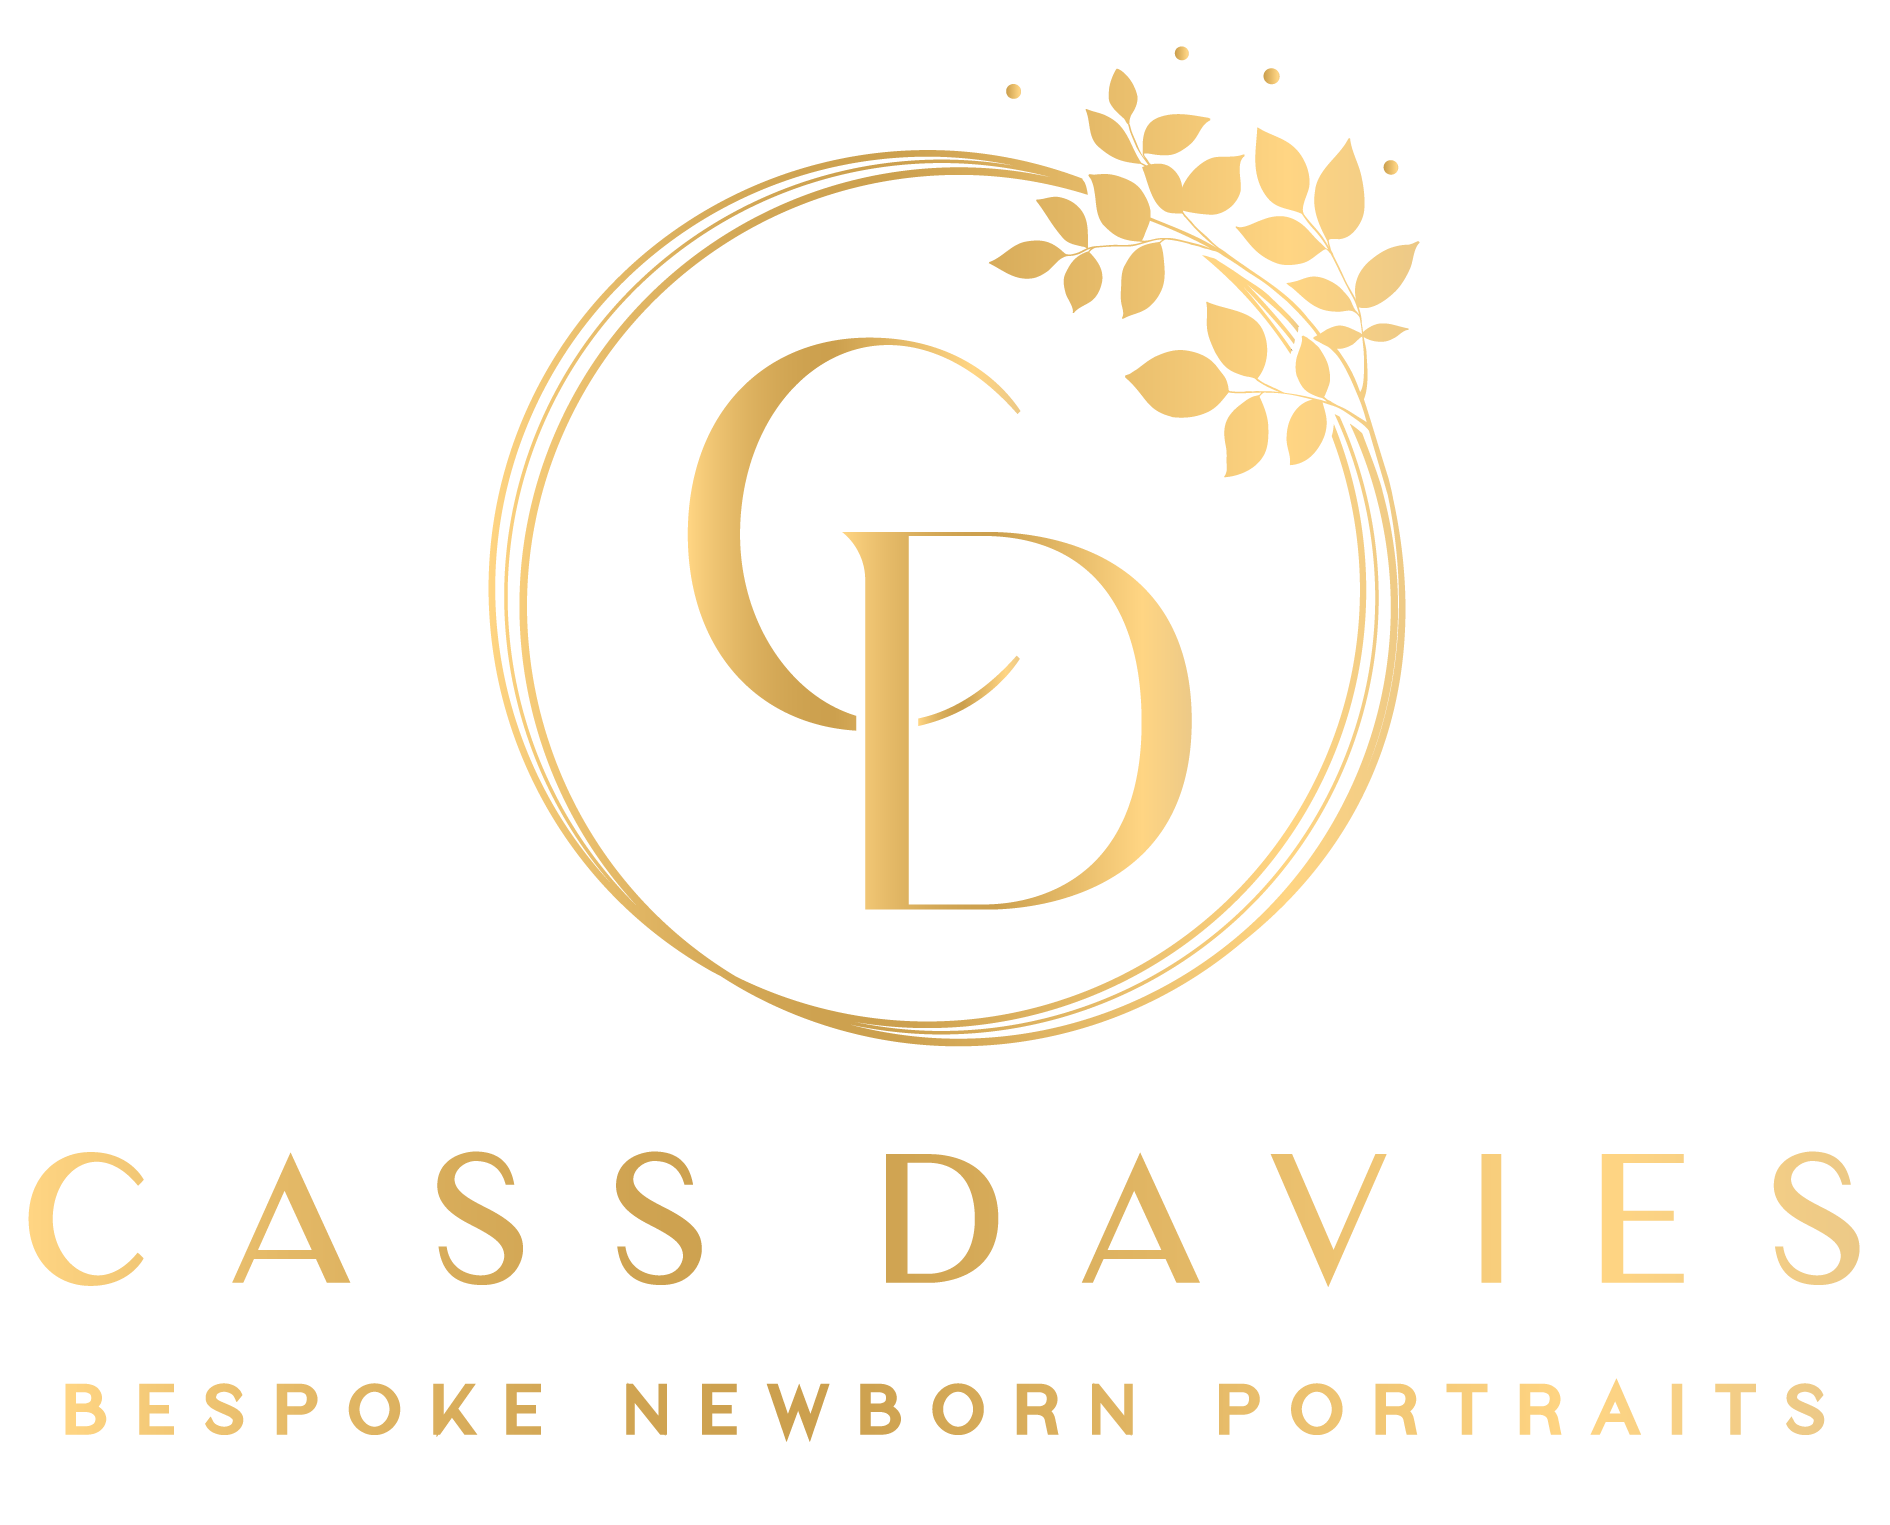 cassdaviesphotography.co.uk